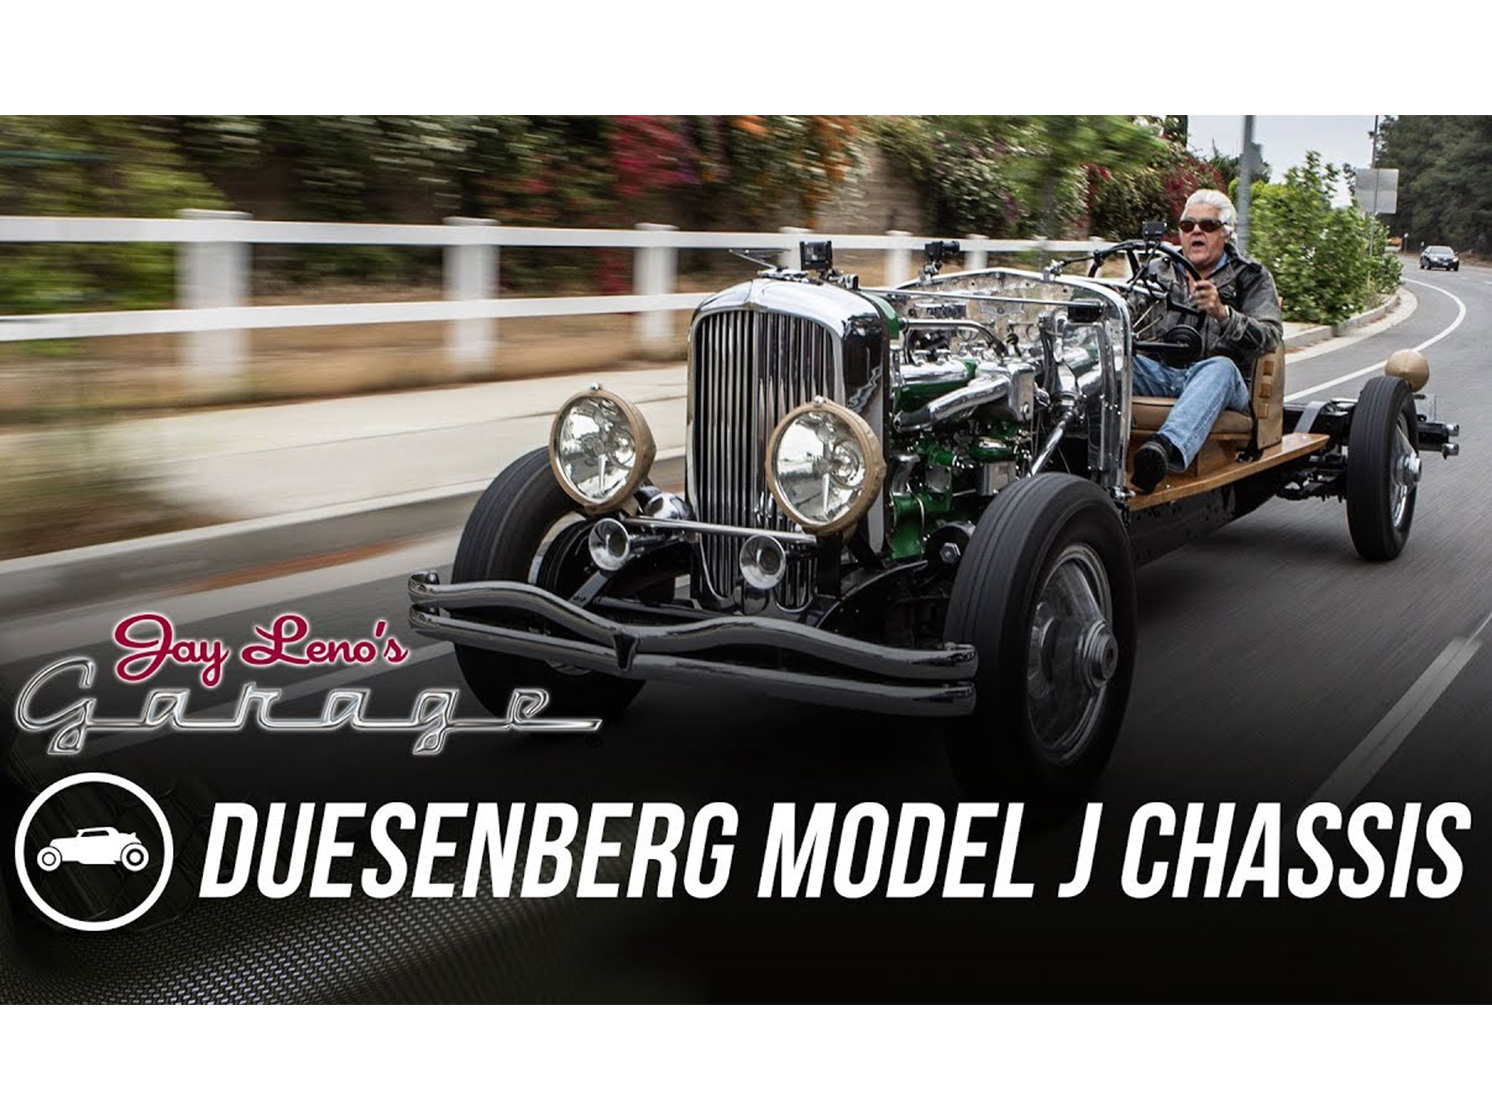 Driving a Duesenberg is one thing, but driving a Duesenberg chassis is just crazy thumbnail